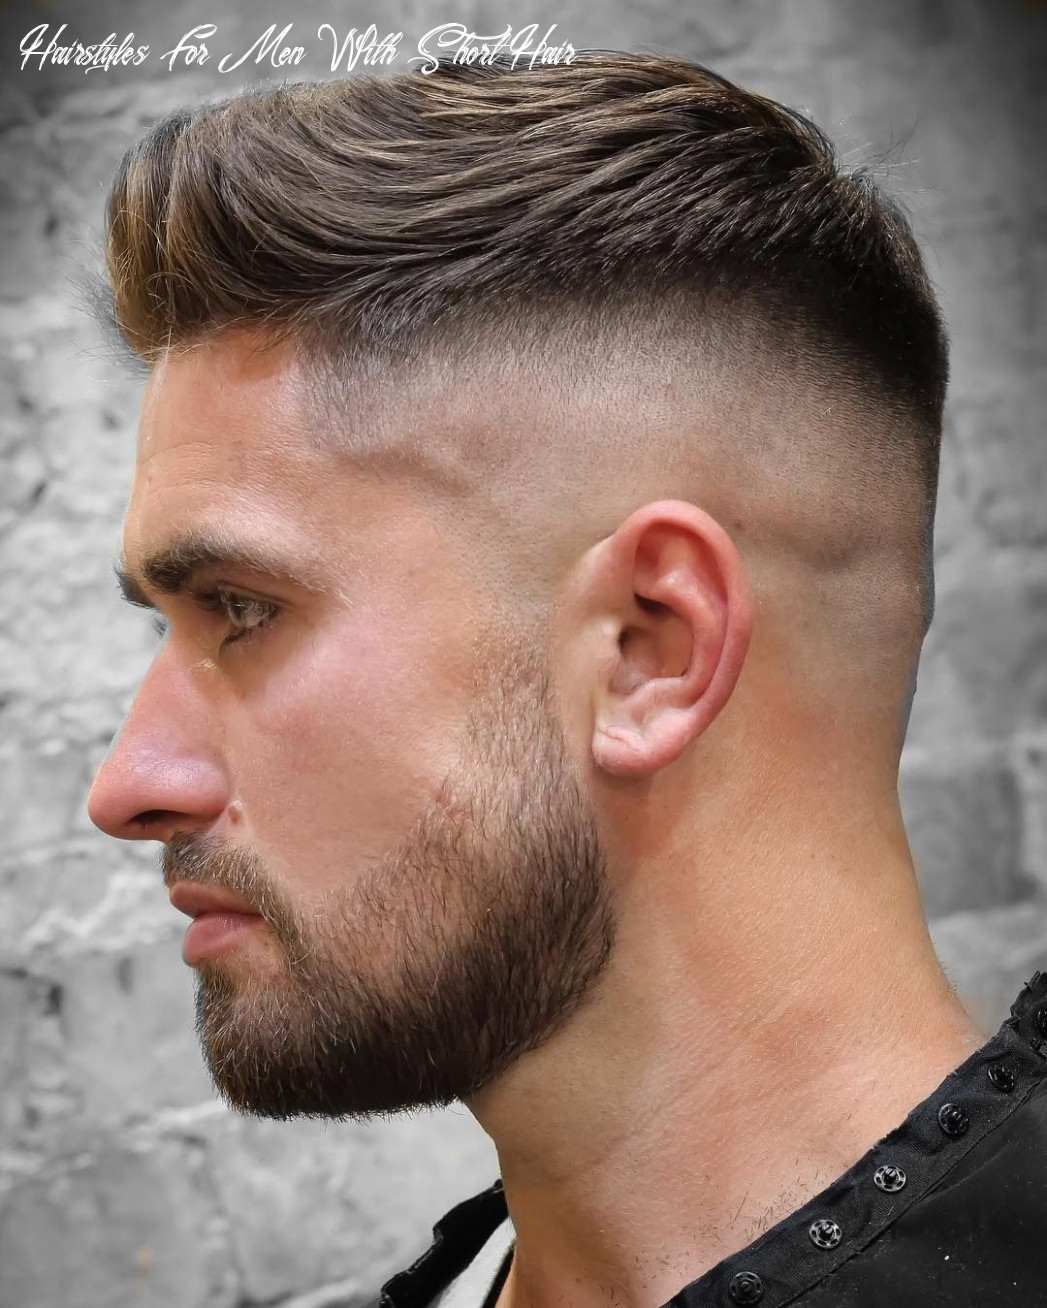 Pin on barber hairstyles for men with short hair